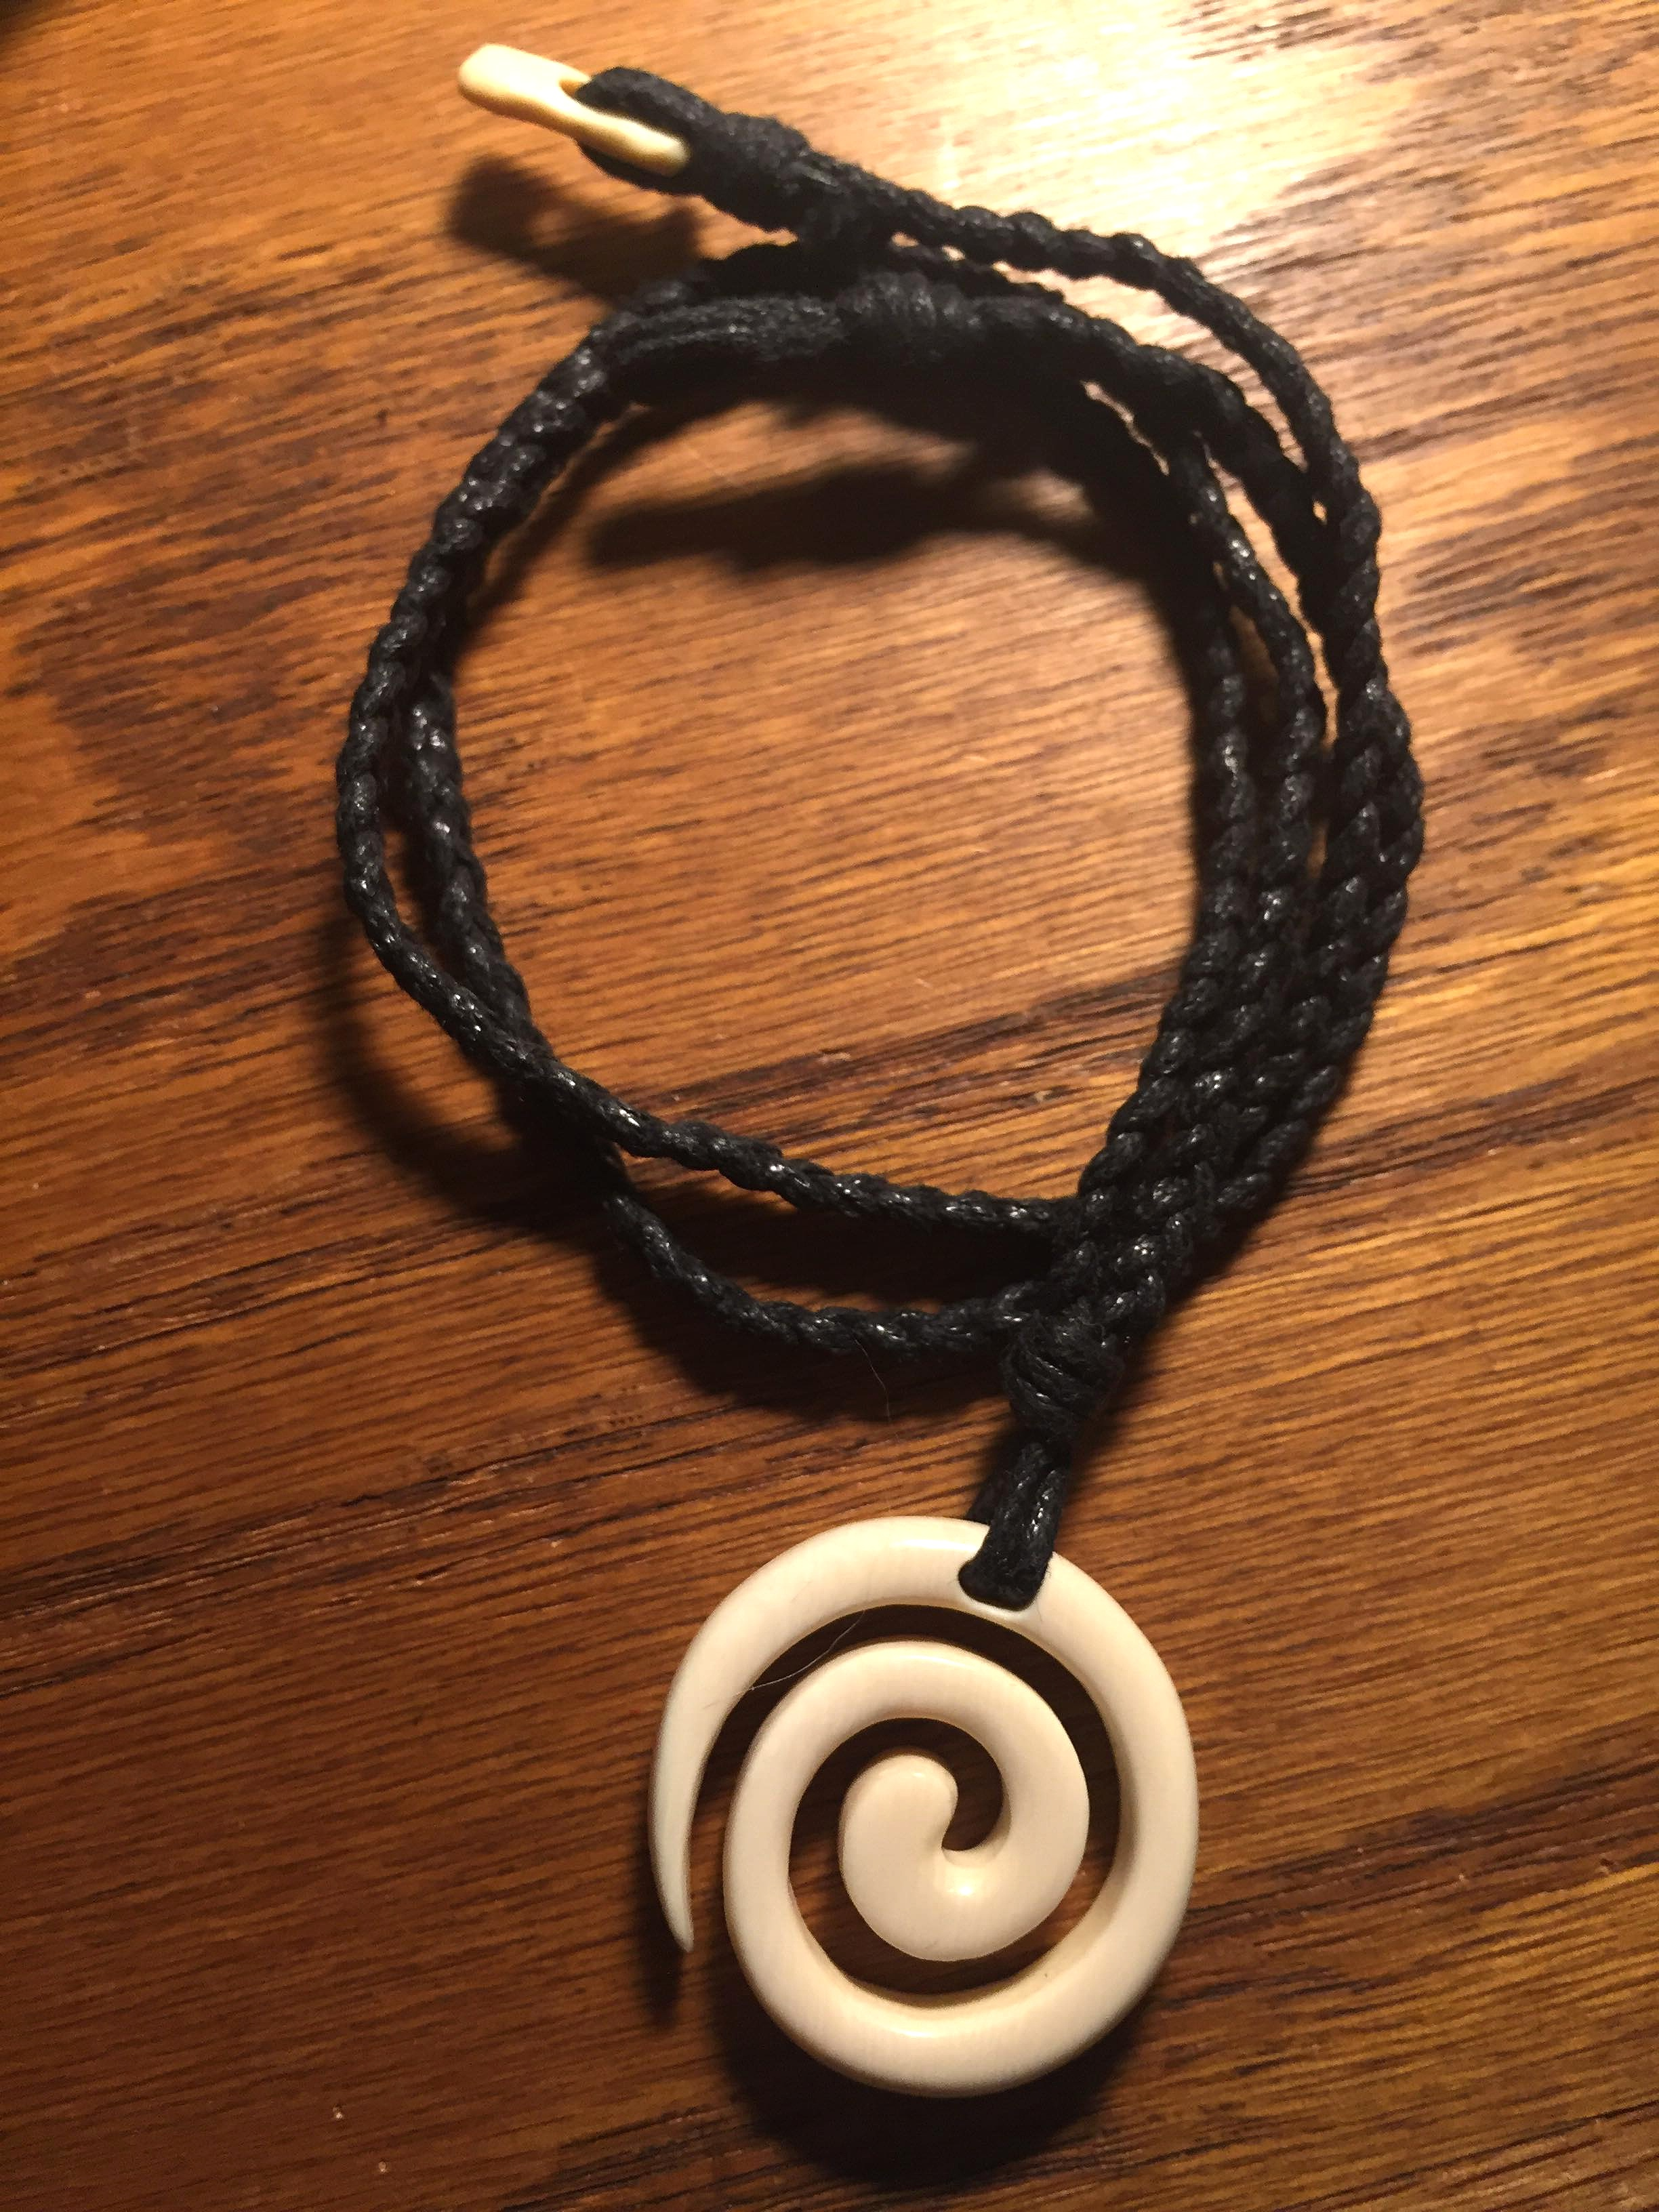 My Necklace from a concept on spirals, carved by Al Ganir.